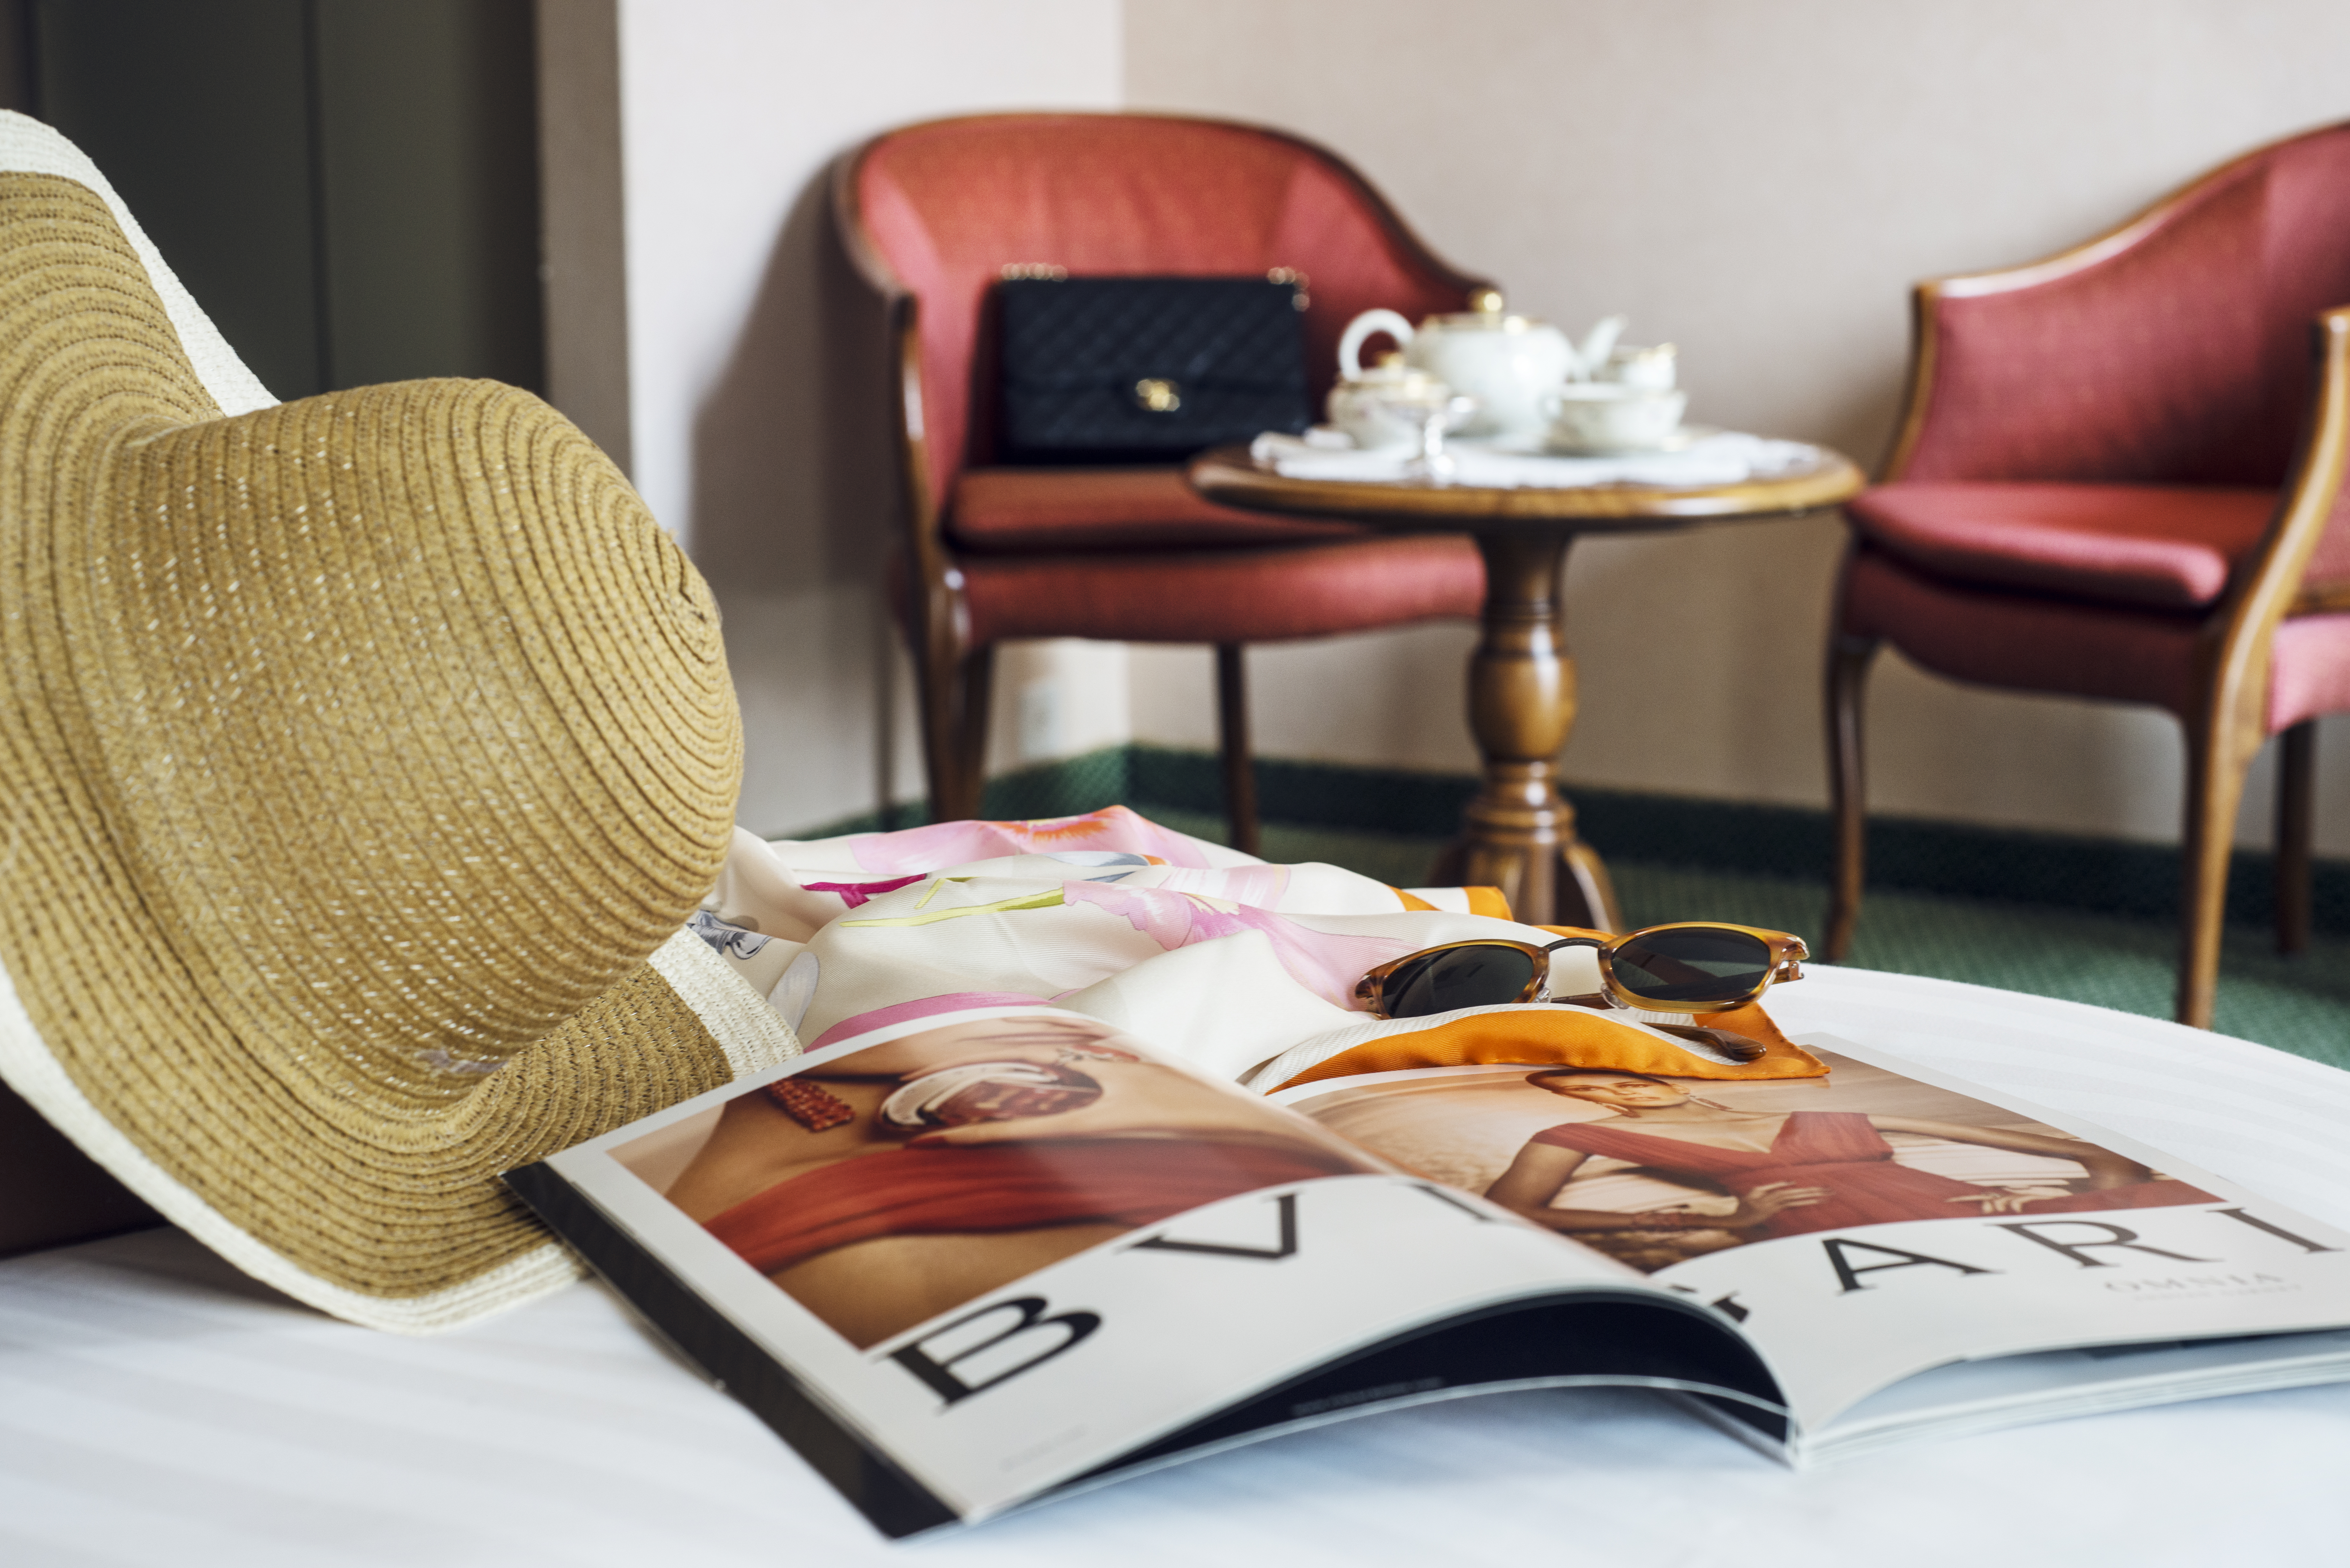 Magazine, sunglasses and hat lie on a white table